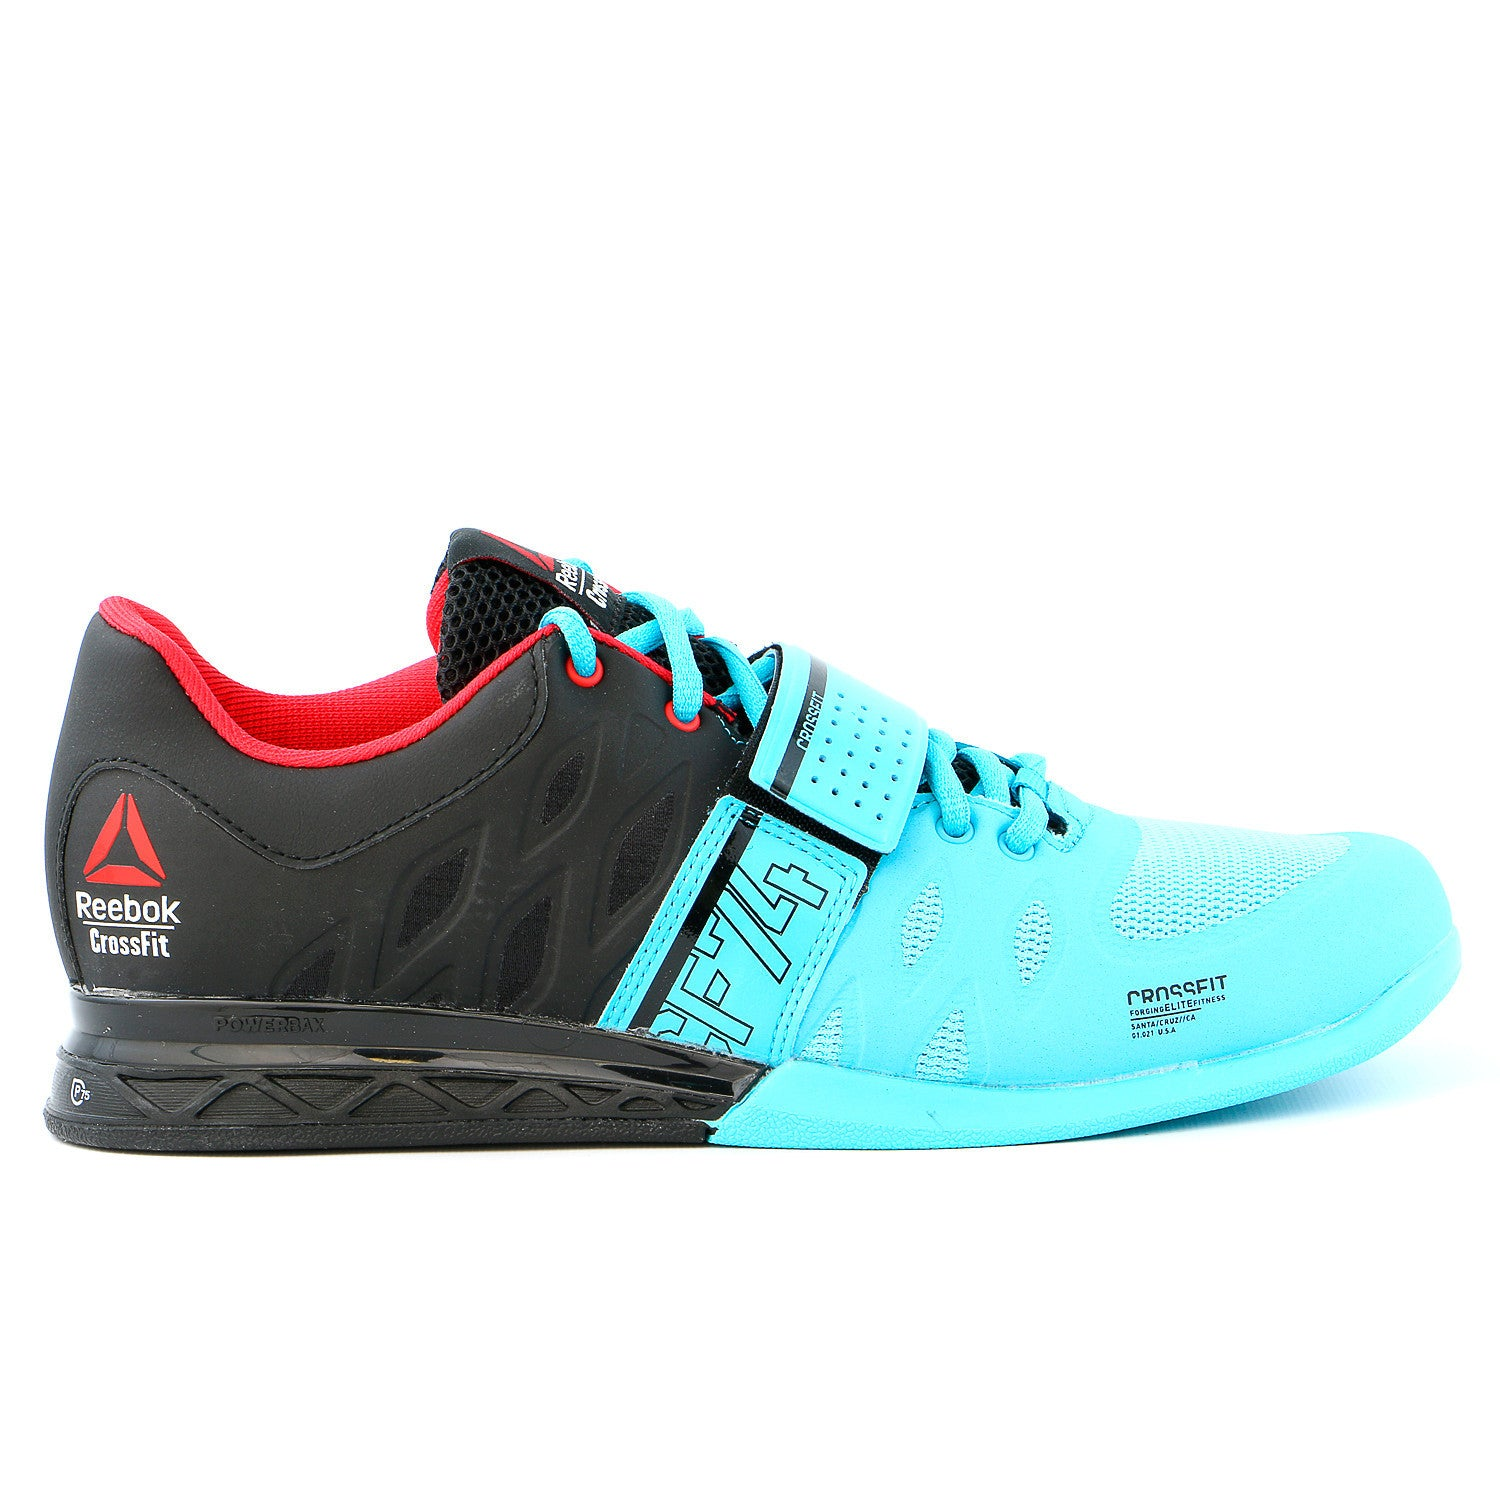 293d9afafbe2 Reebok CrossFit Lifter 2.0 - Neon Blue   Black   Red Rush - Mens ...